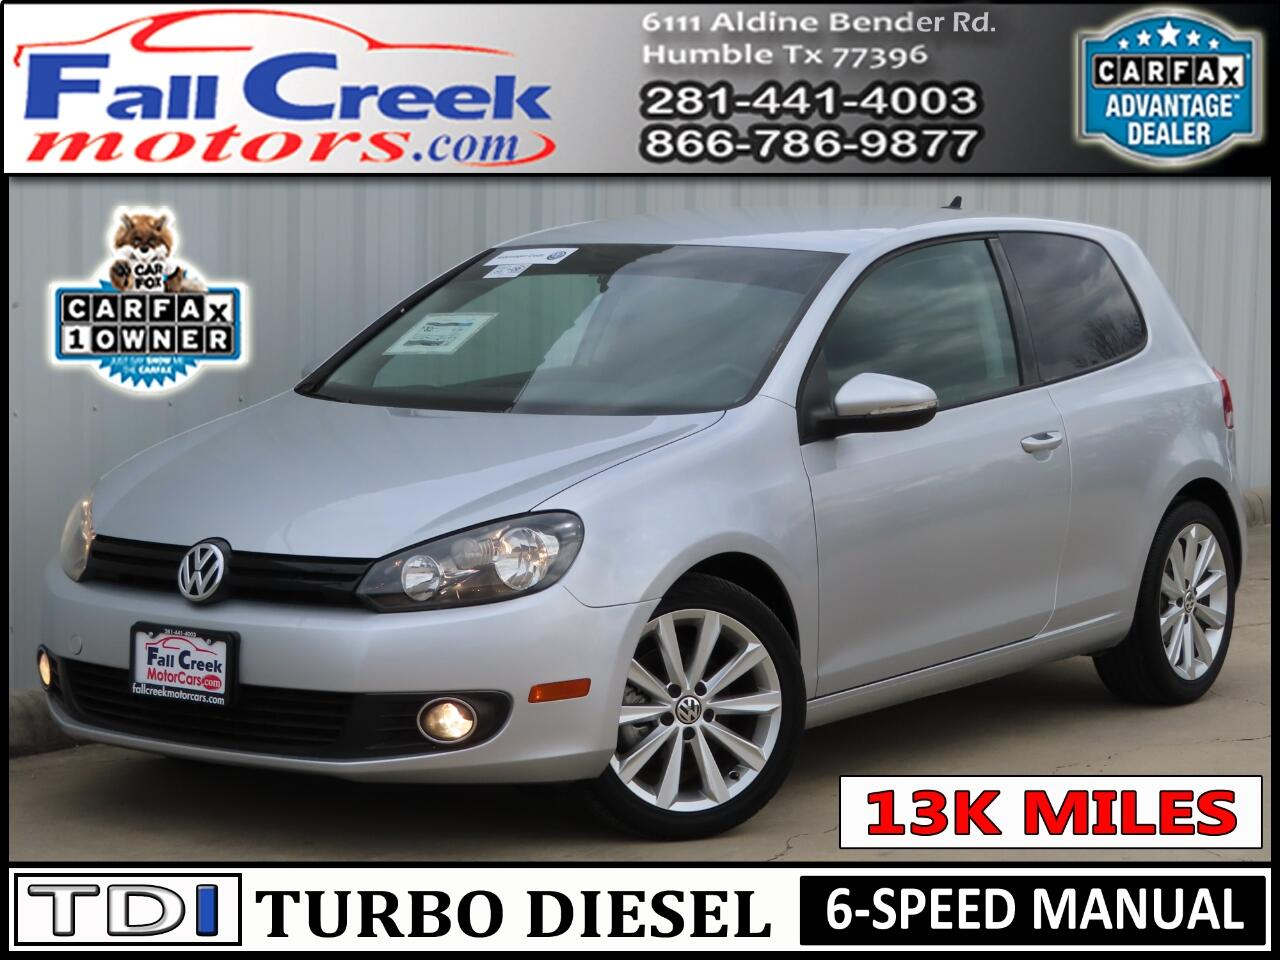 2013 Volkswagen Golf 2.0L 2-Door TDI